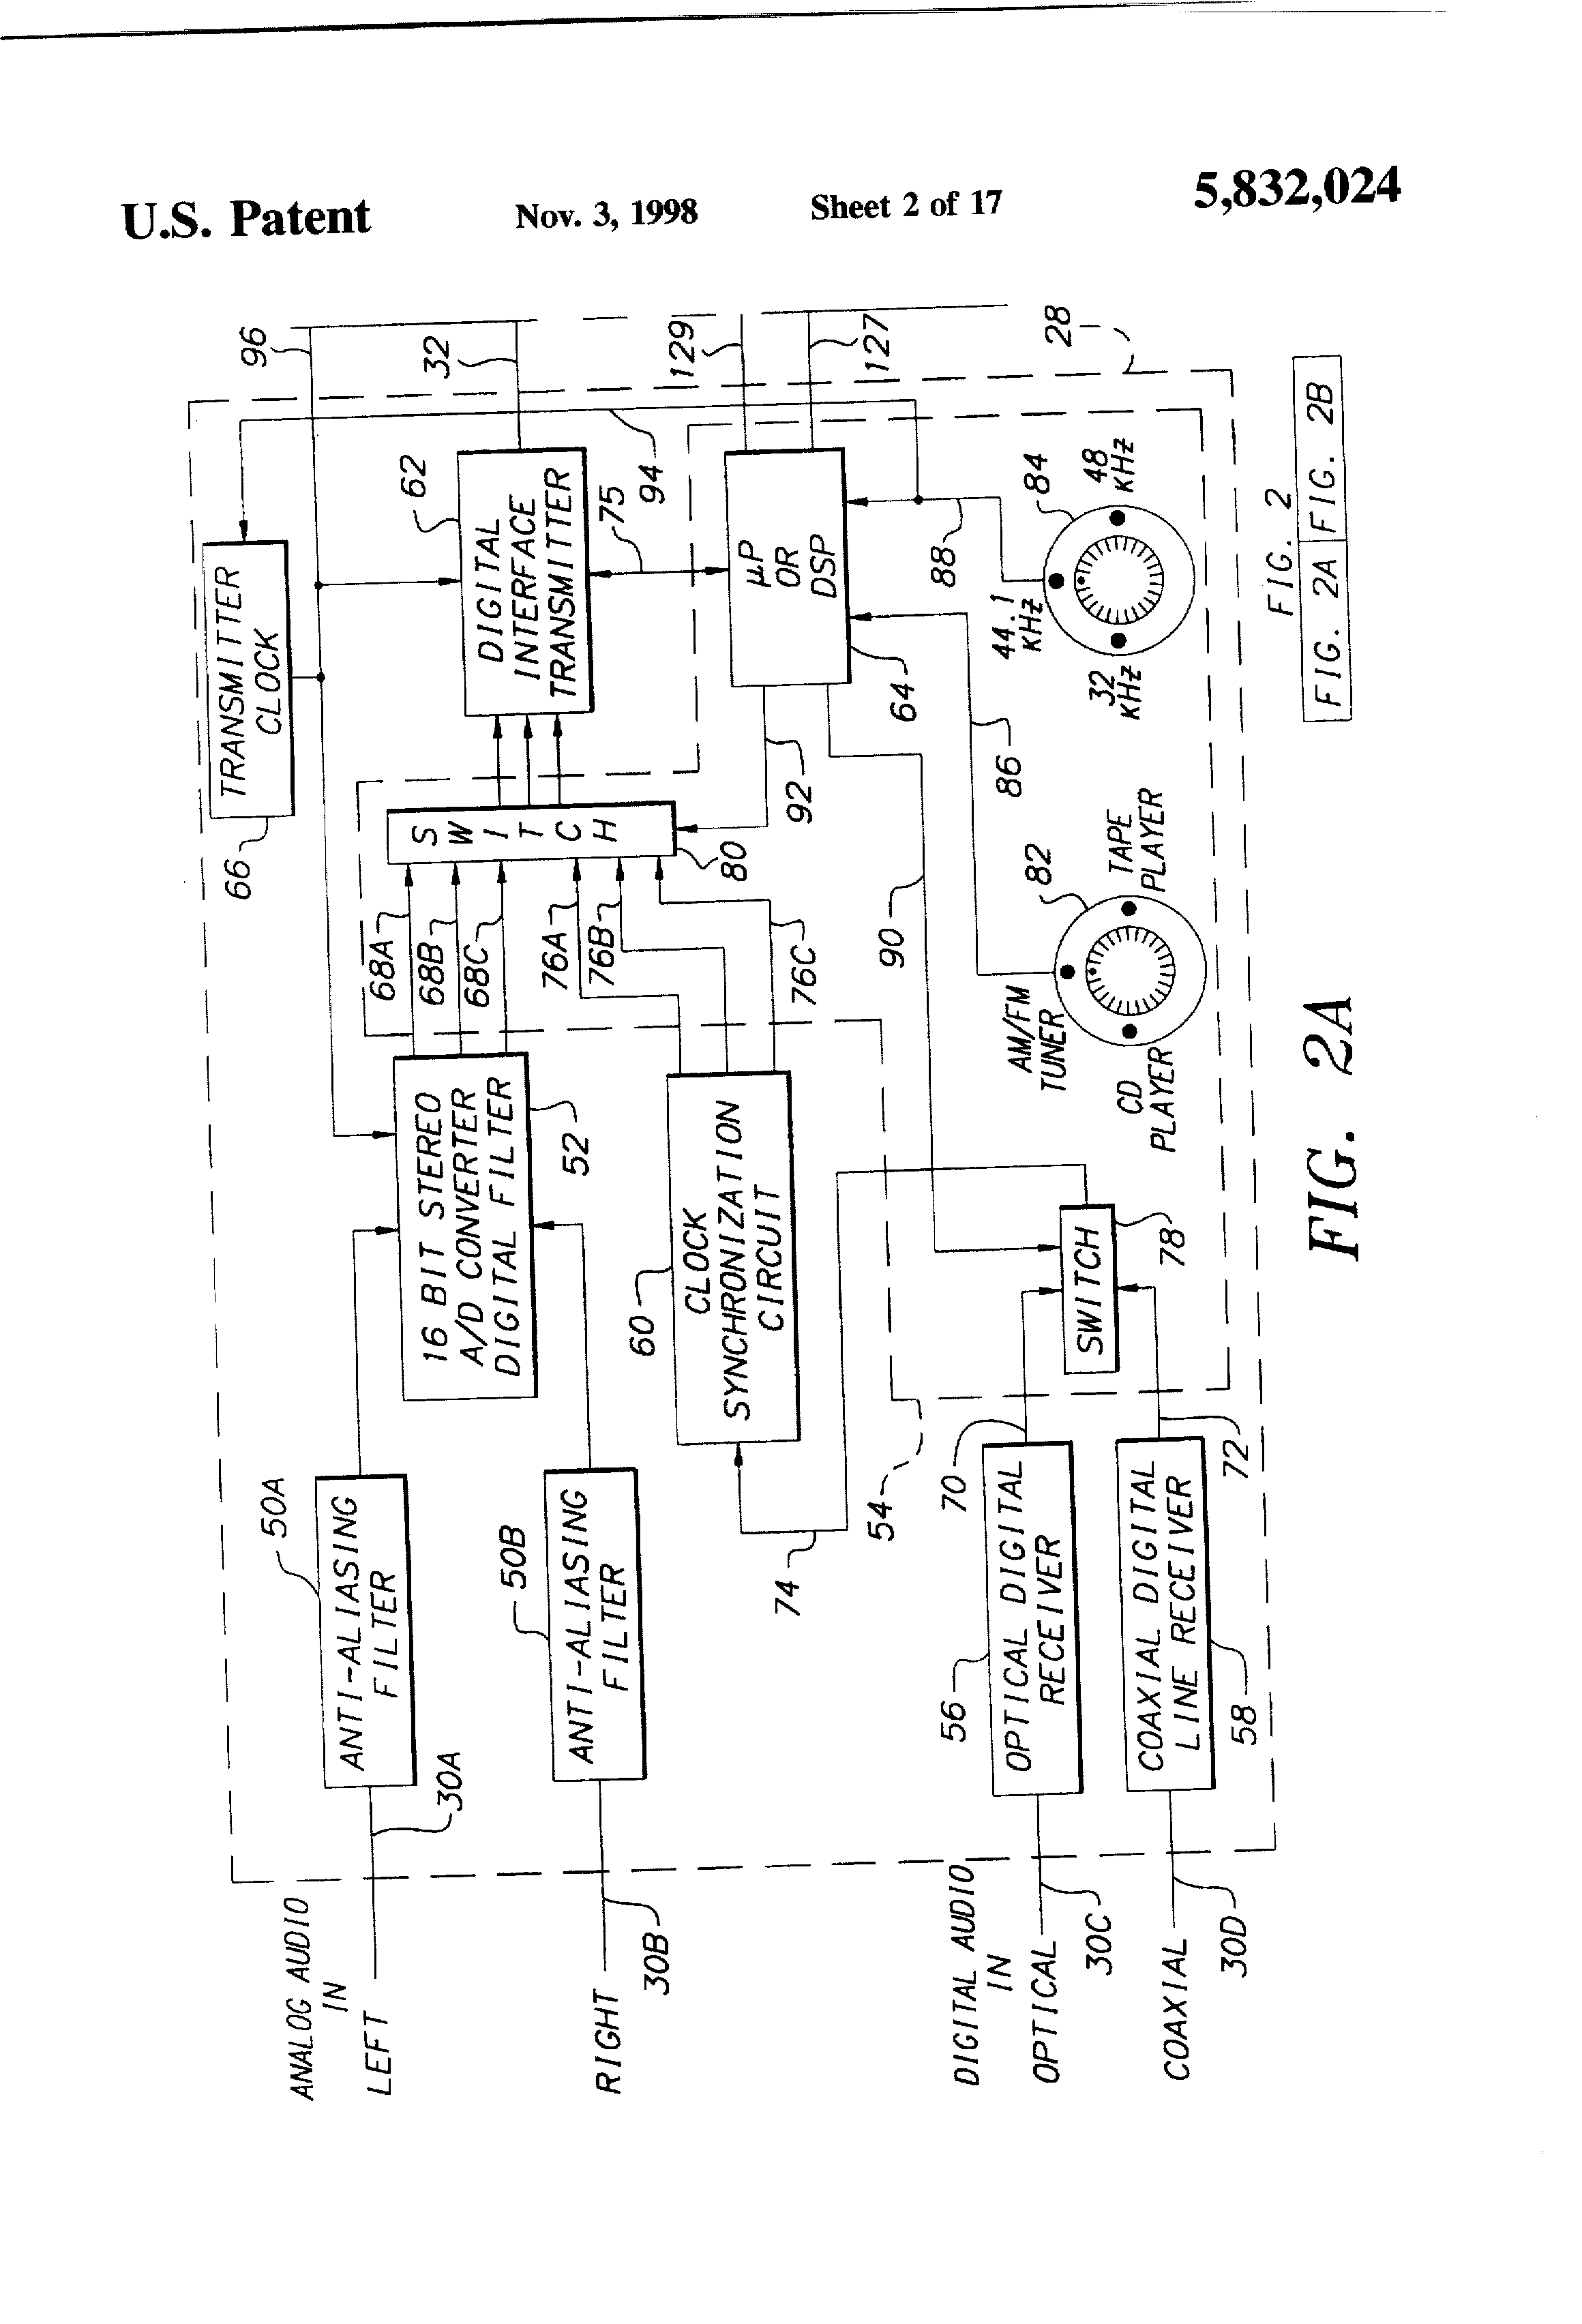 2004 Chevy Silverado Alternator Fuse 2006 F250 Diagram Patent Drawing